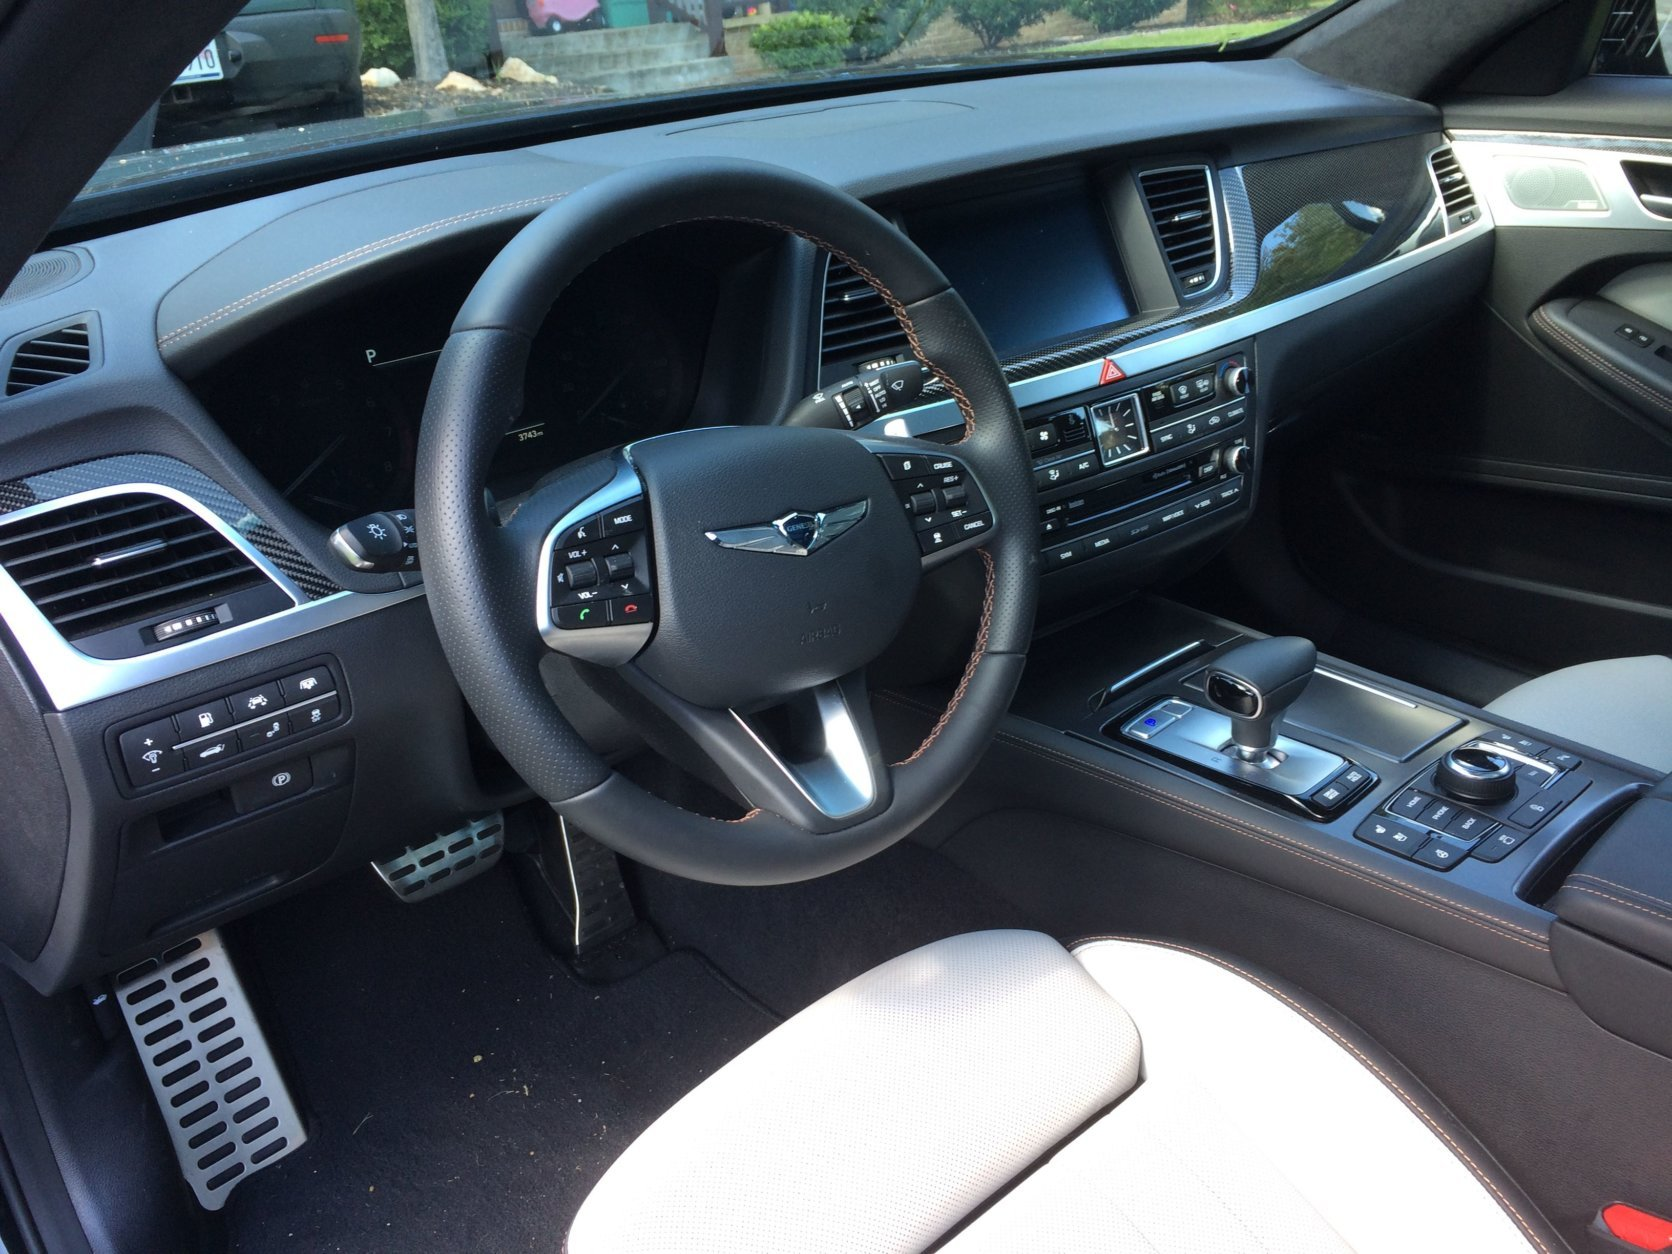 The Genesis G80 Sport's cabin materials are top notch with carbon fiber and aluminum trim that really improve its look and feel. (WTOP/Mike Parris)